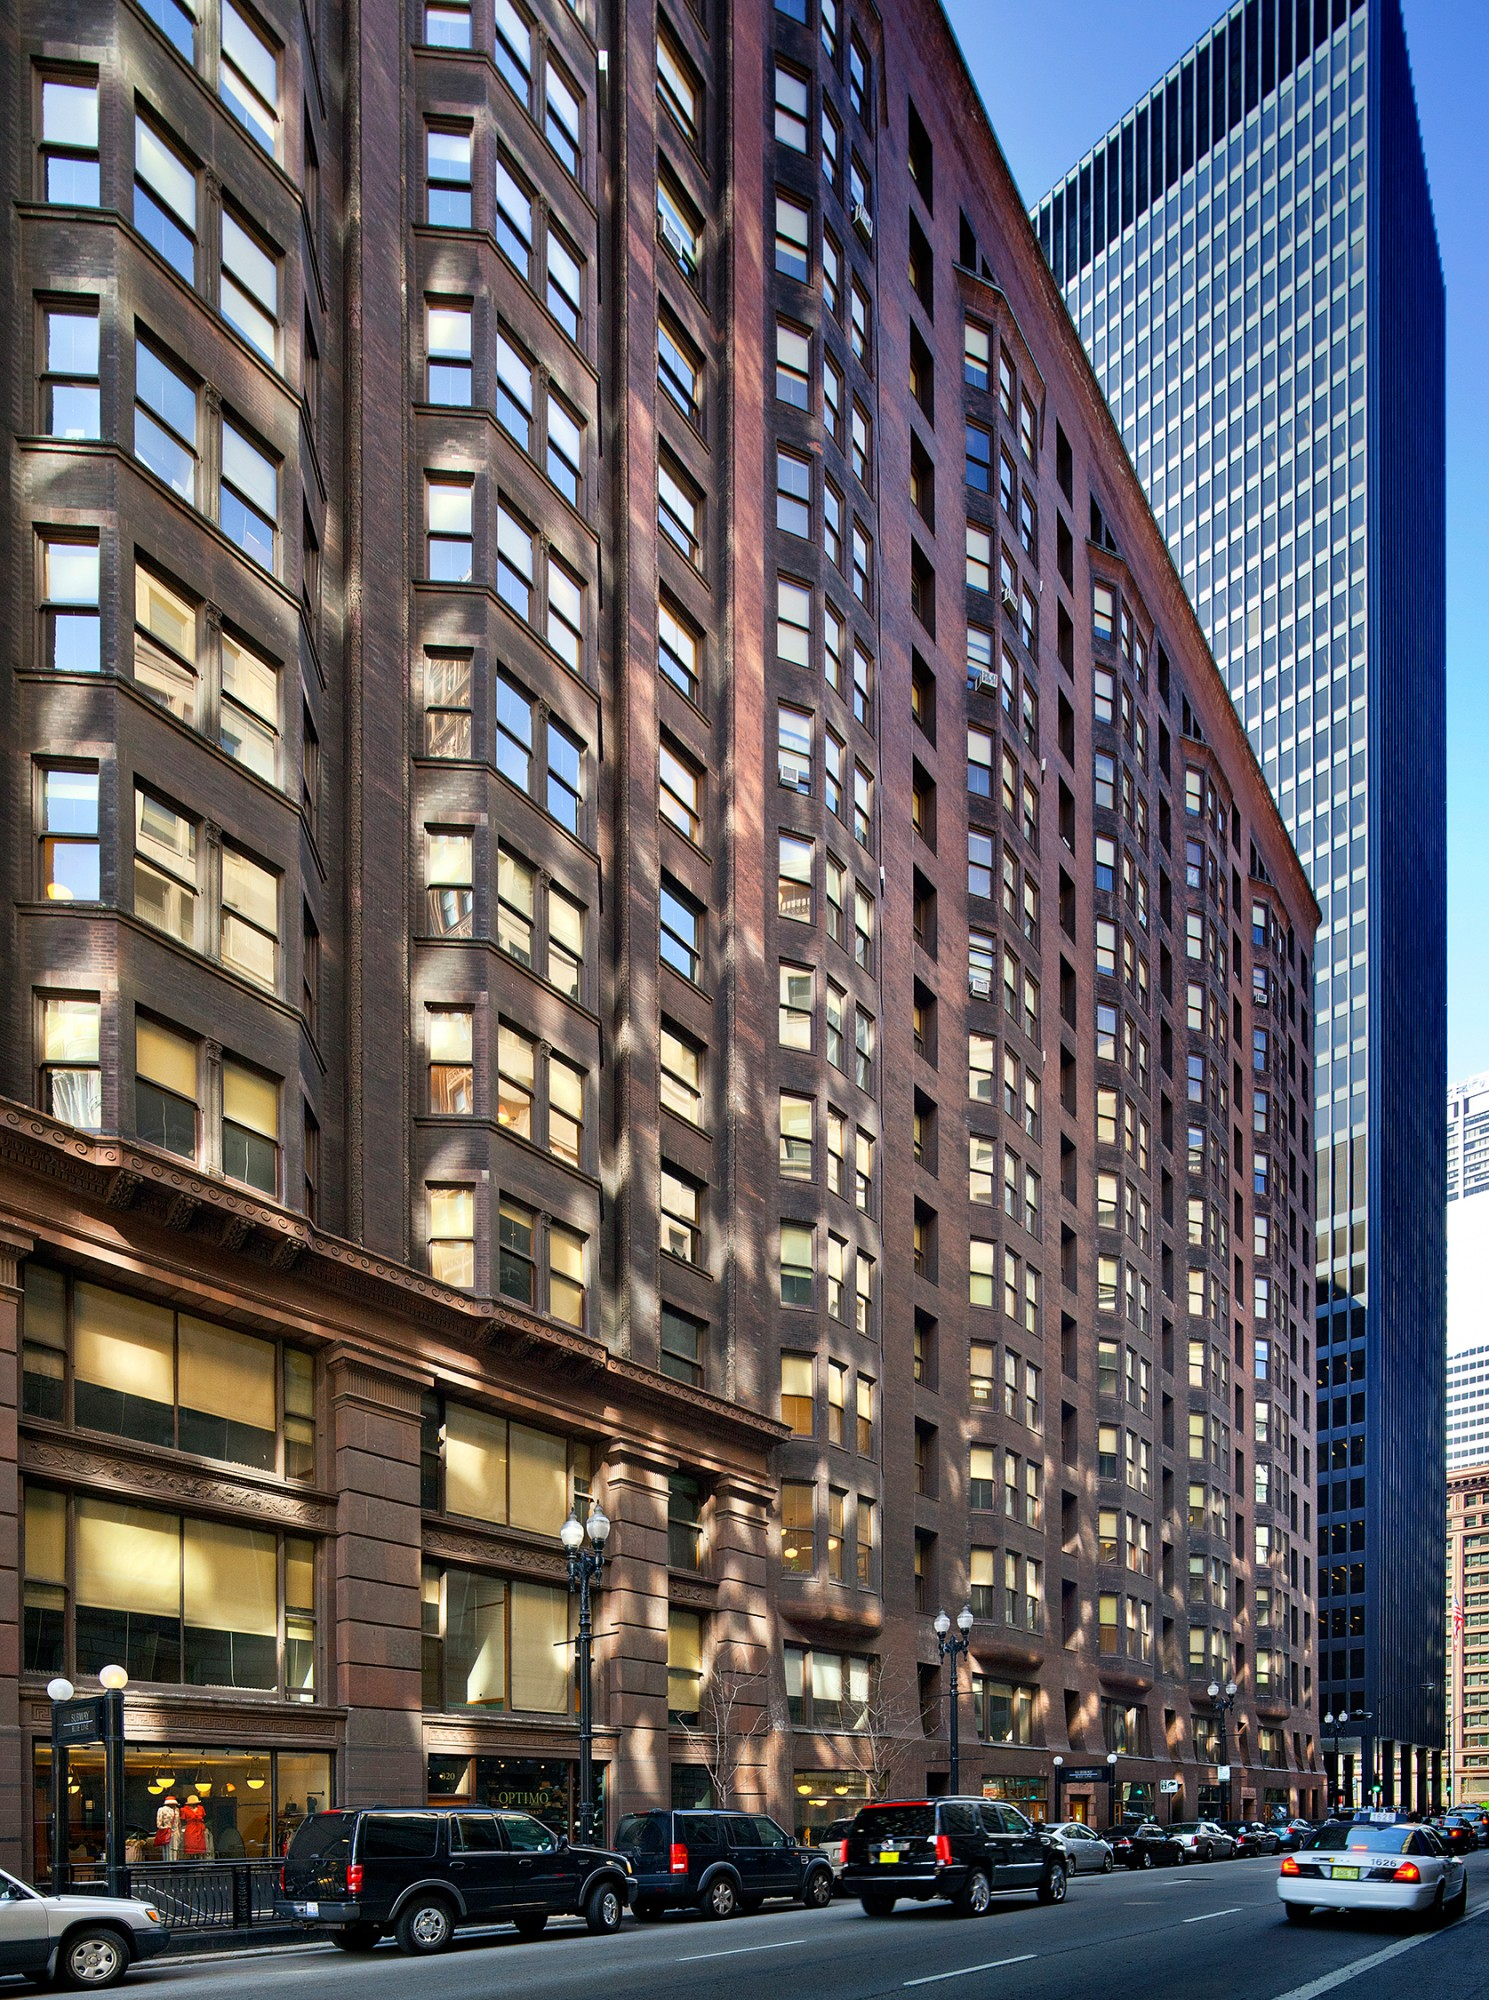 Monadnock Building · Tours · Chicago Architecture Center - CAC